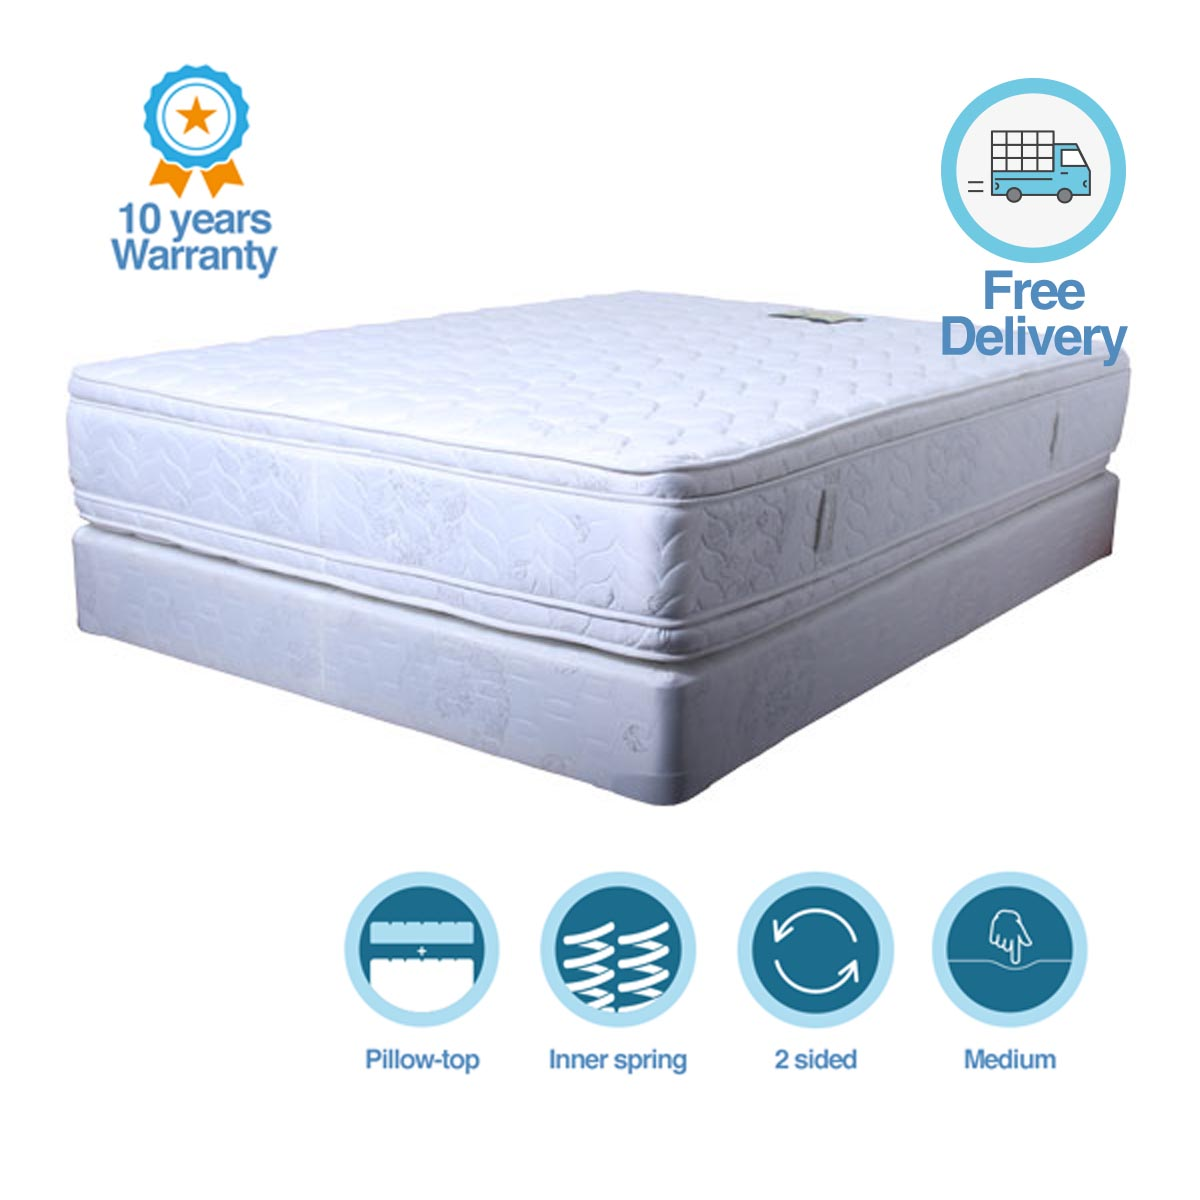 Bed Mattress Sydney Luxury Double Sided Pillow Top Style Mattress Sydney Bed